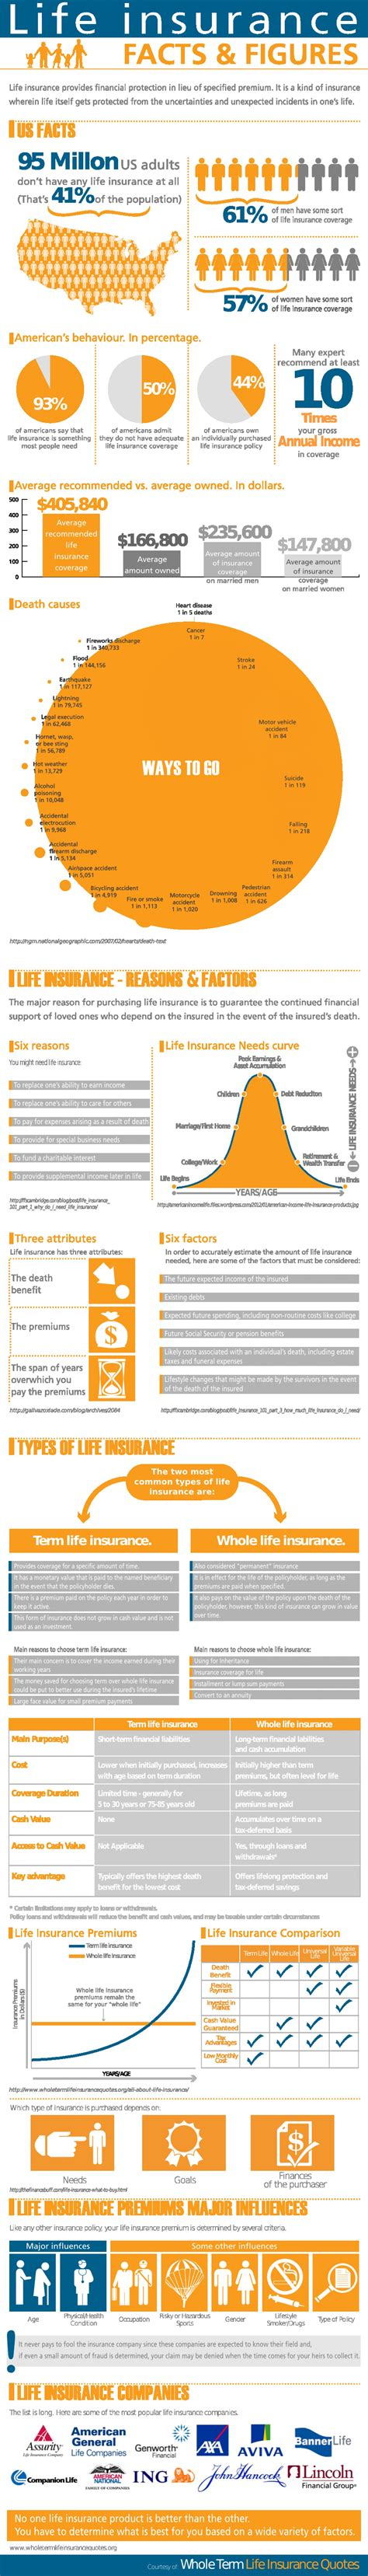 Life Insurance Facts & Figures   Visual.ly